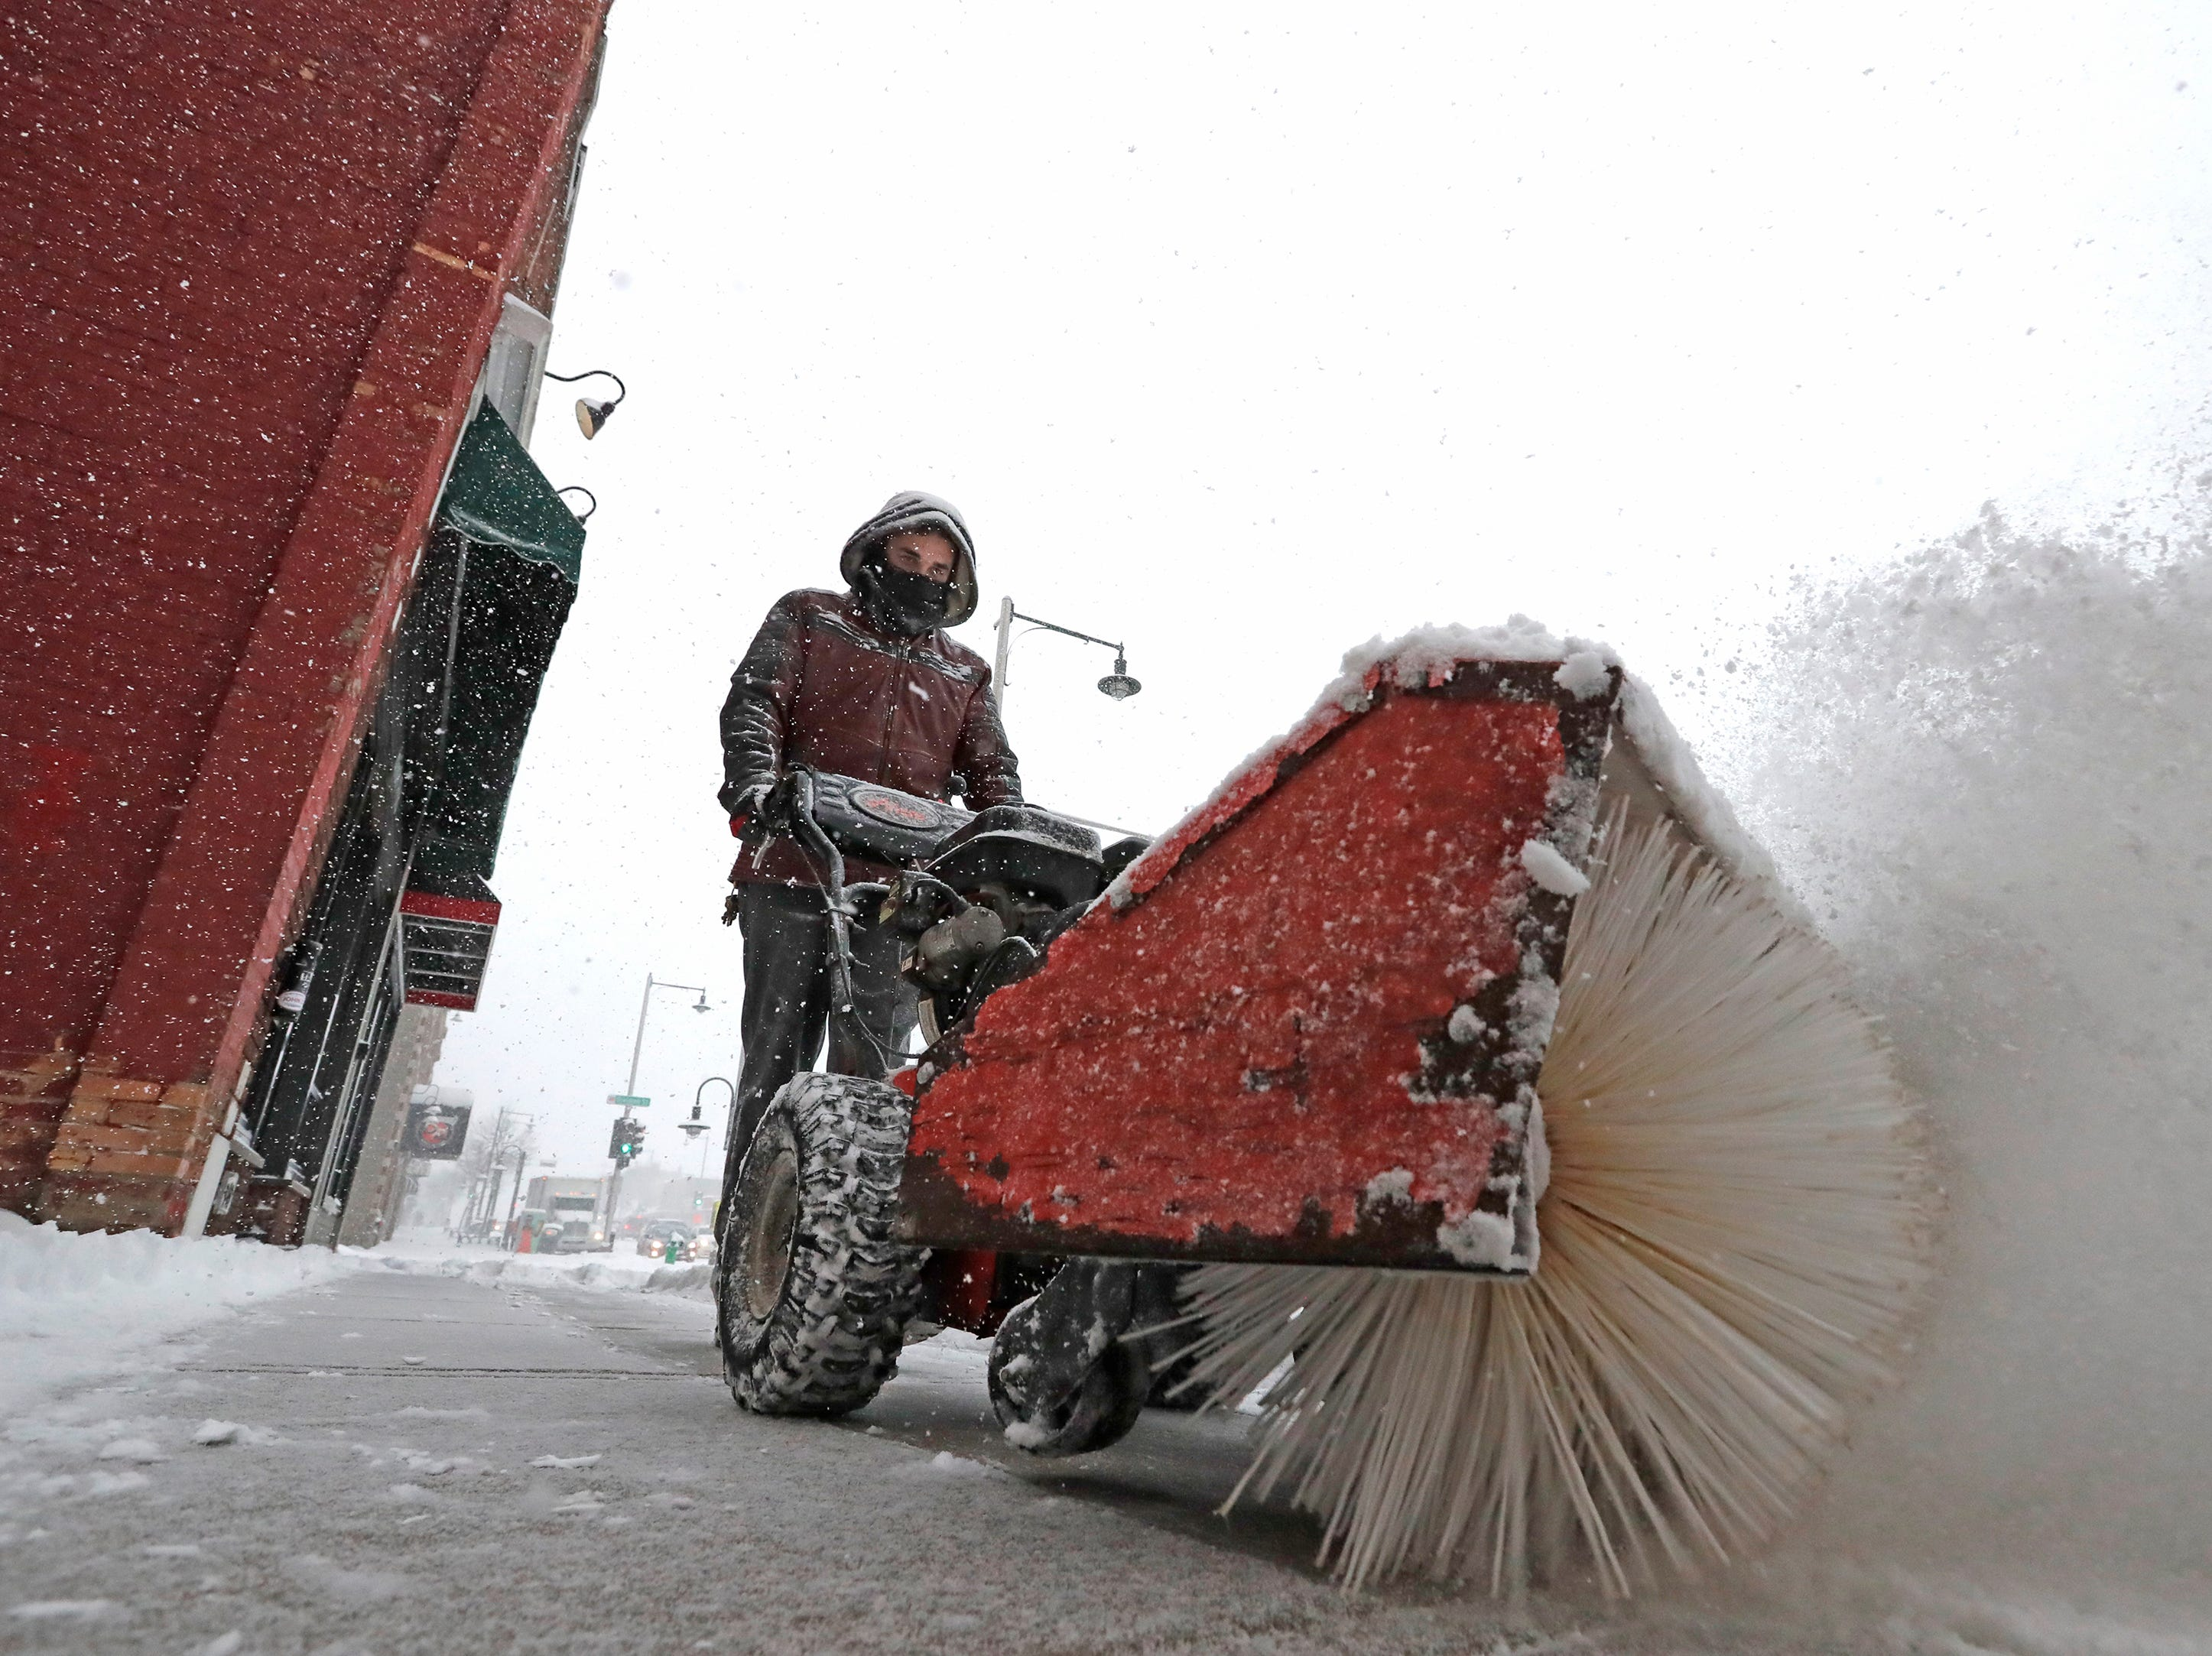 Ben Salzman, an employee with Red Lion Hotel Paper Valley, clears snow from in front of the hotel during a snowstorm Wednesday, January 23, 2019, in downtown Appleton, Wis. 